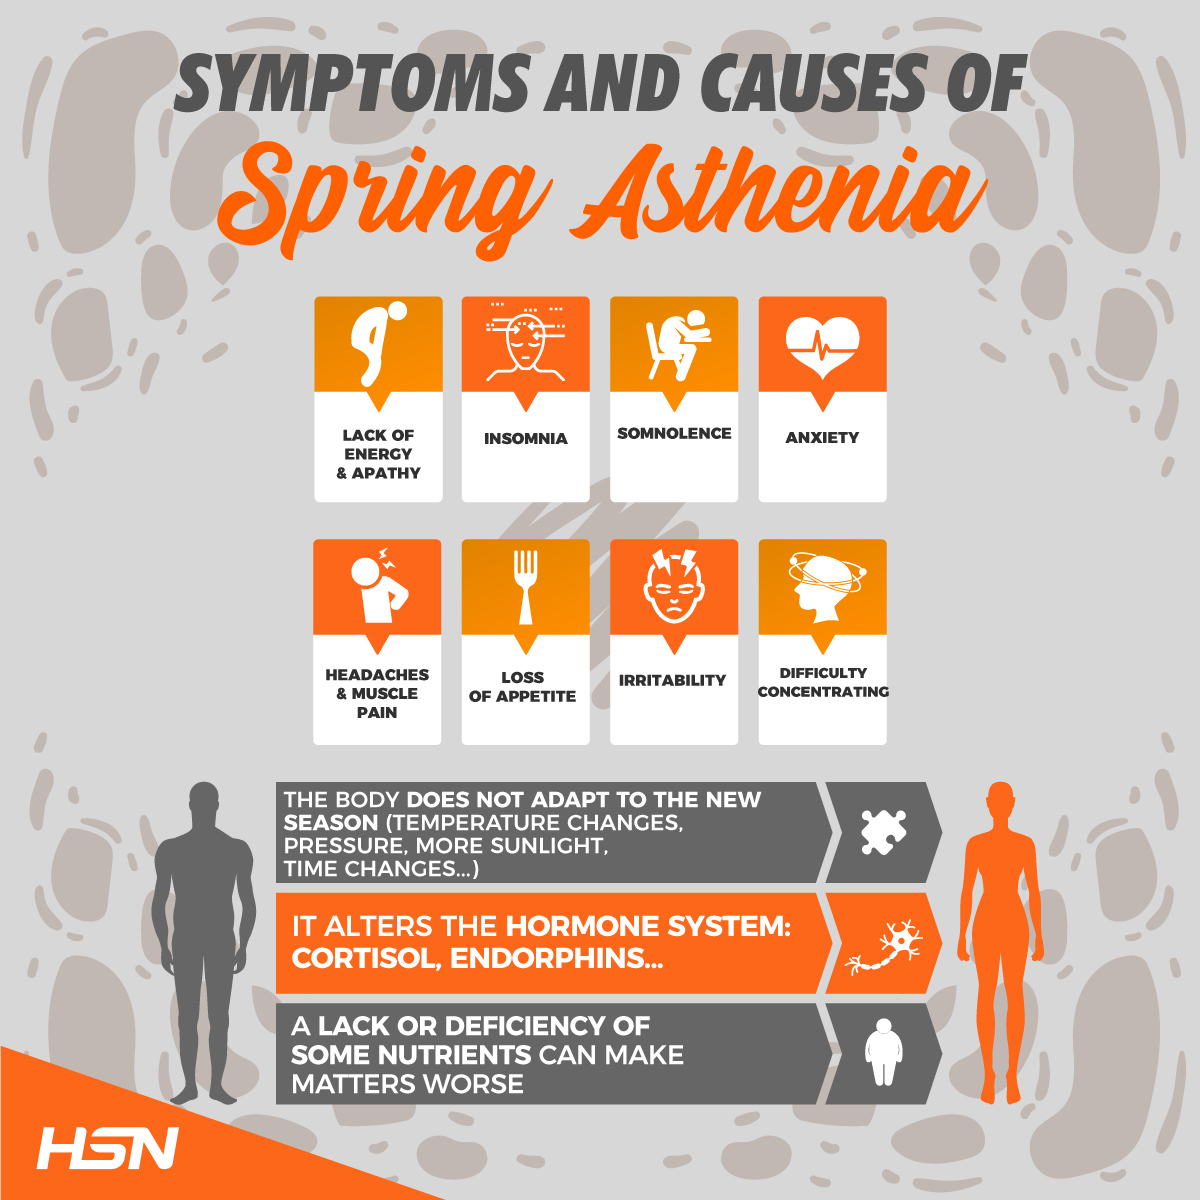 Symptoms and Causes of Spring Asthenia